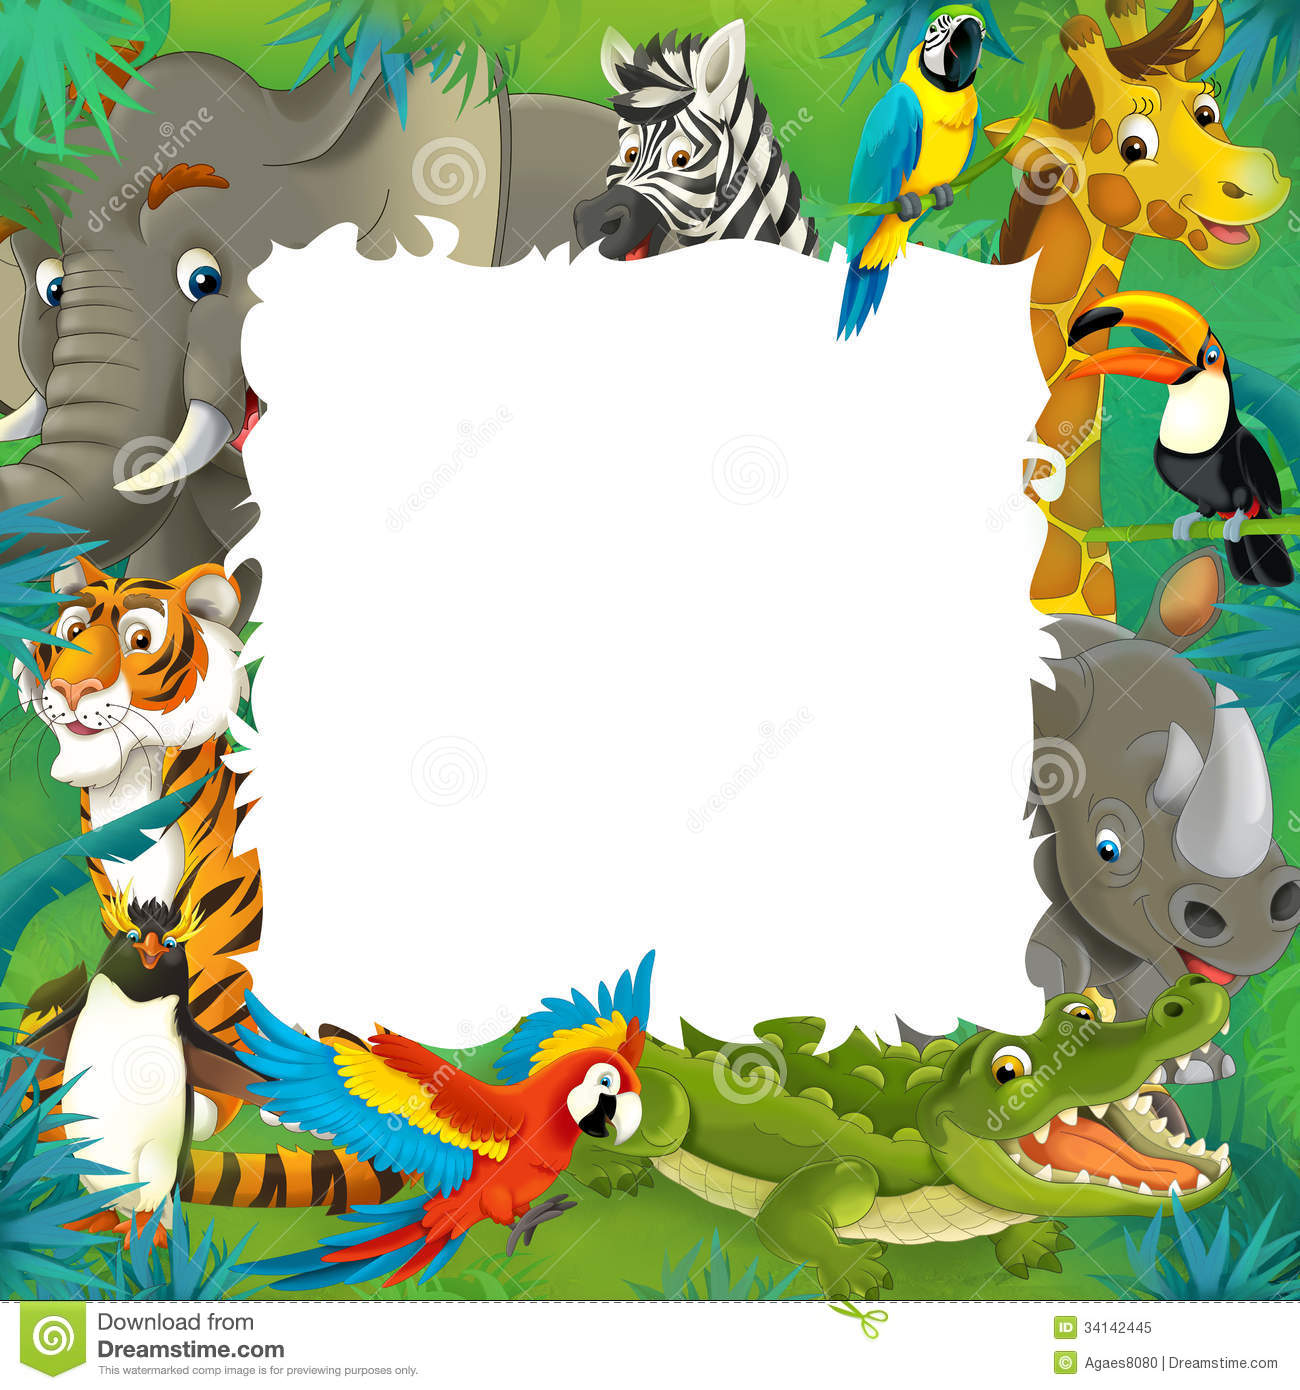 Jungle Themed Birthday Party Invitations with best invitation ideas